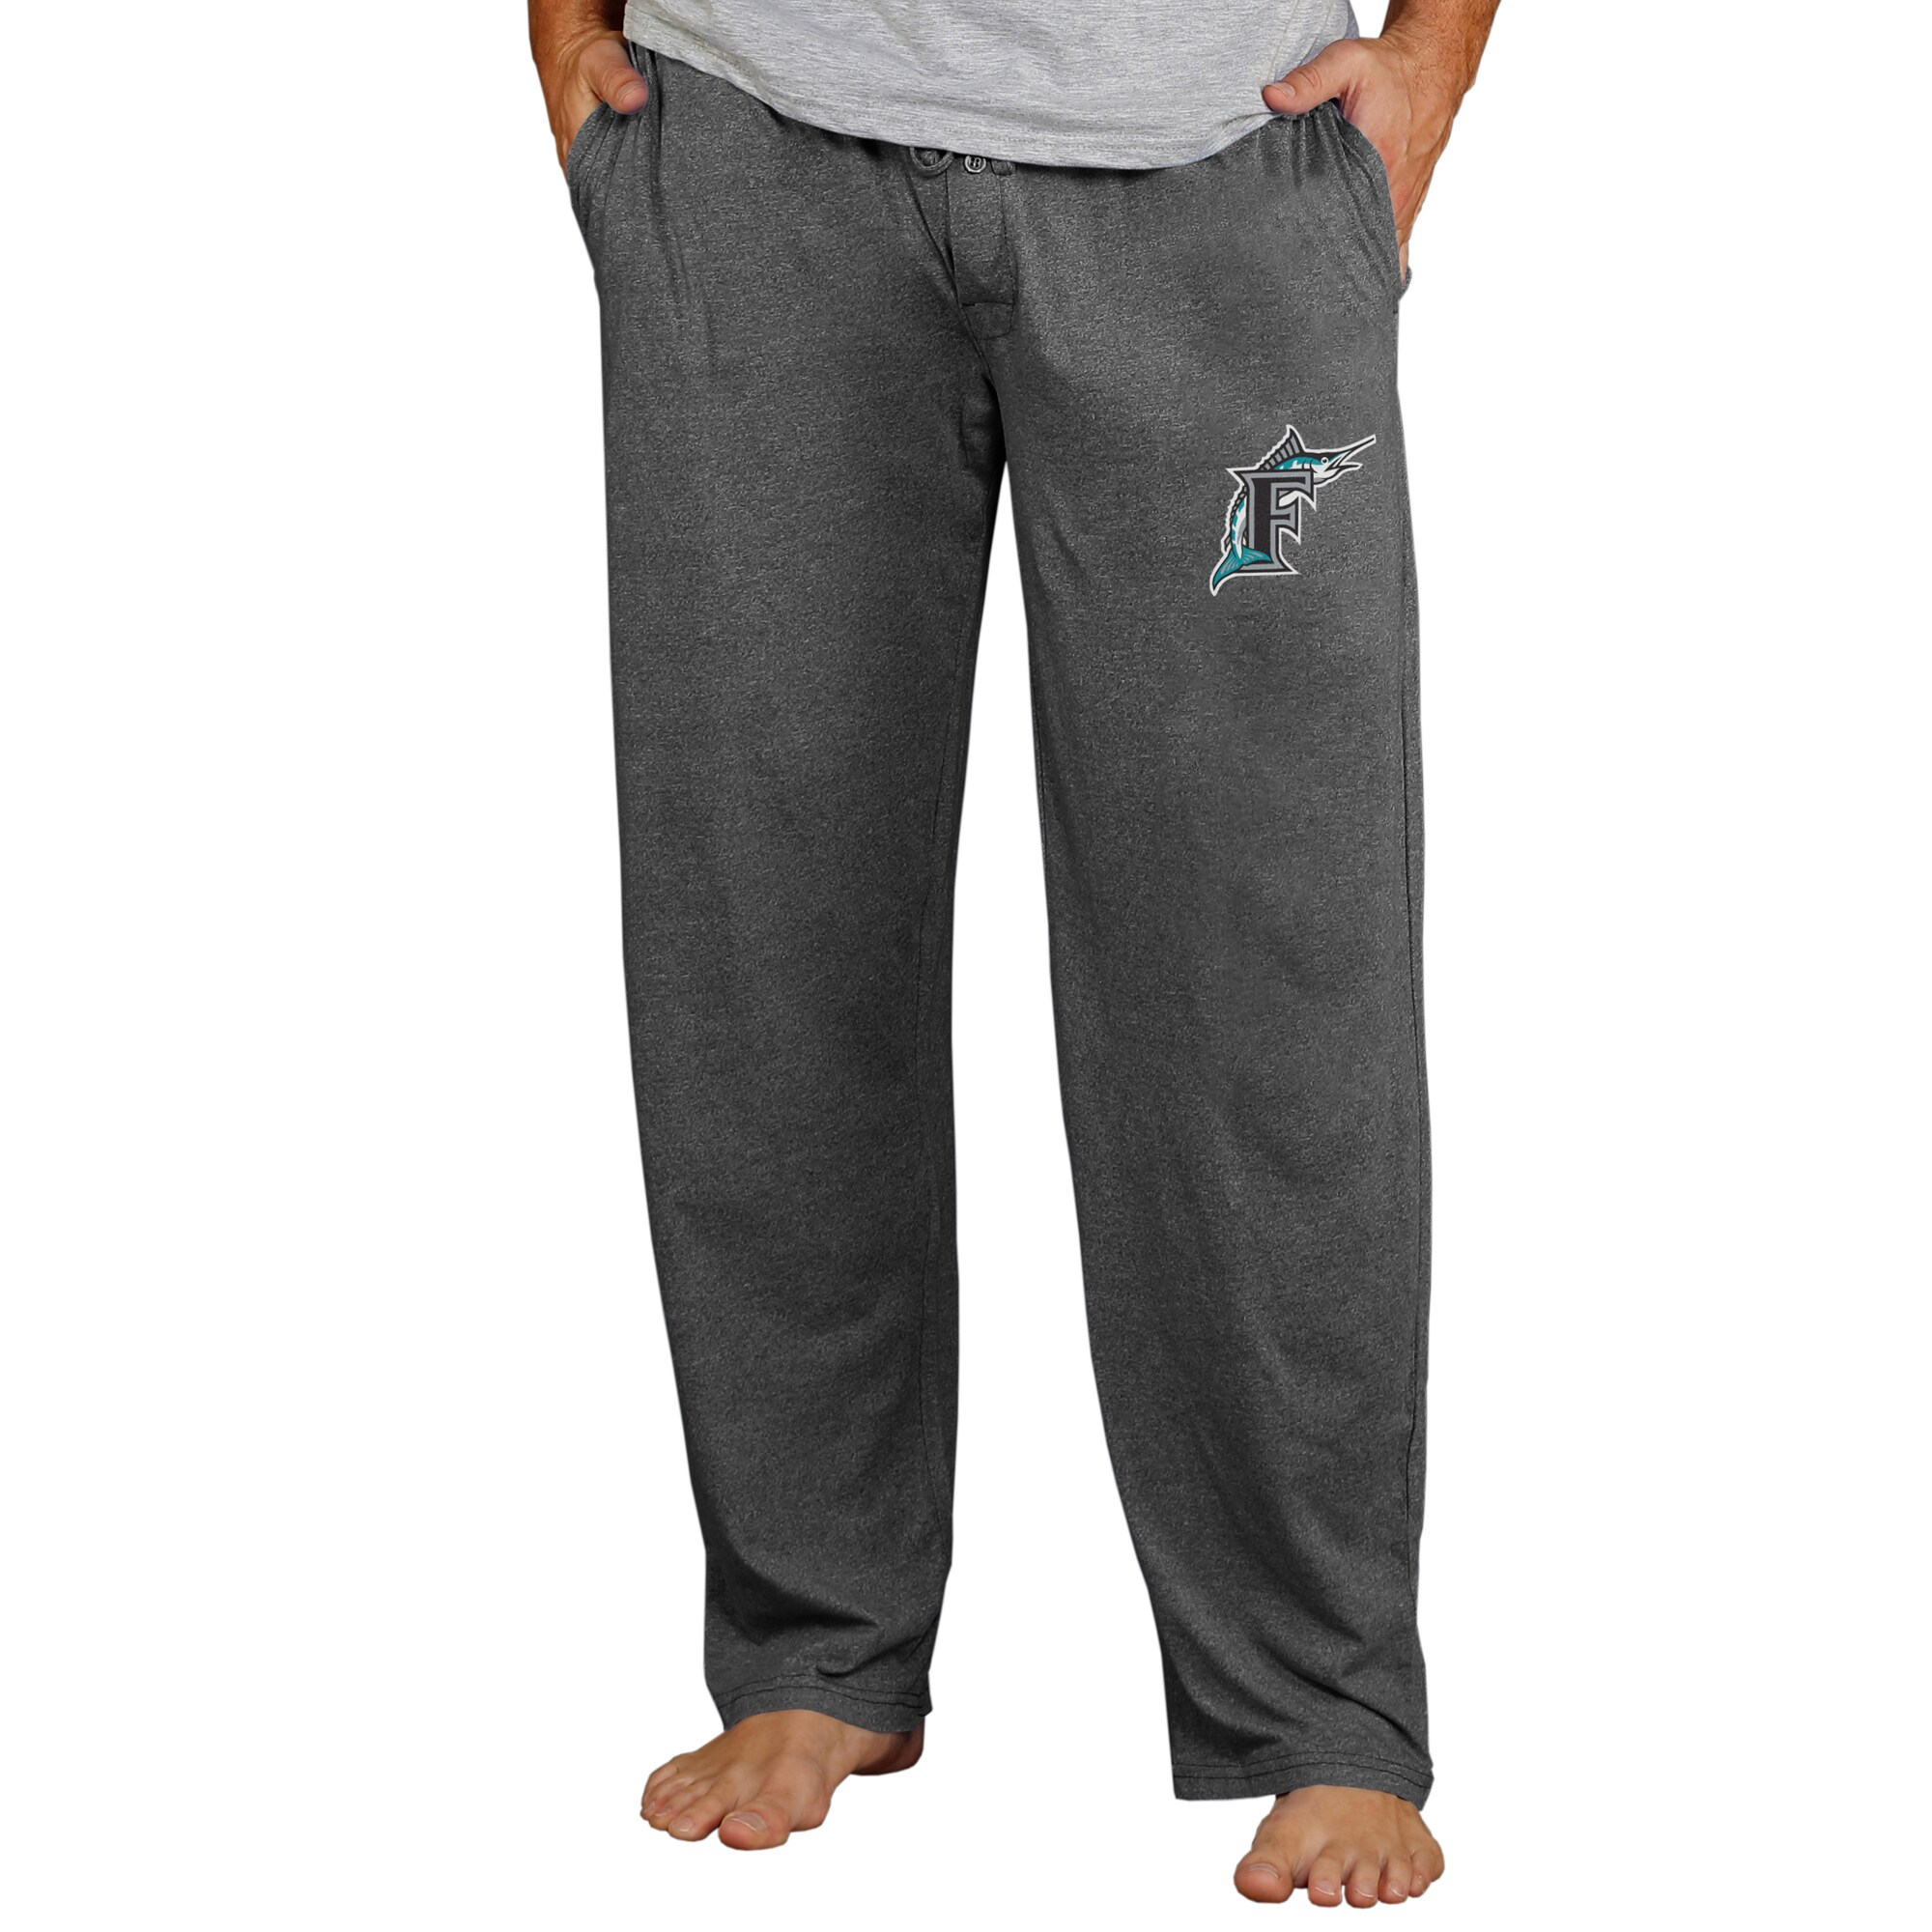 Miami Marlins Concepts Sport Cooperstown Quest Lounge Pants - Charcoal